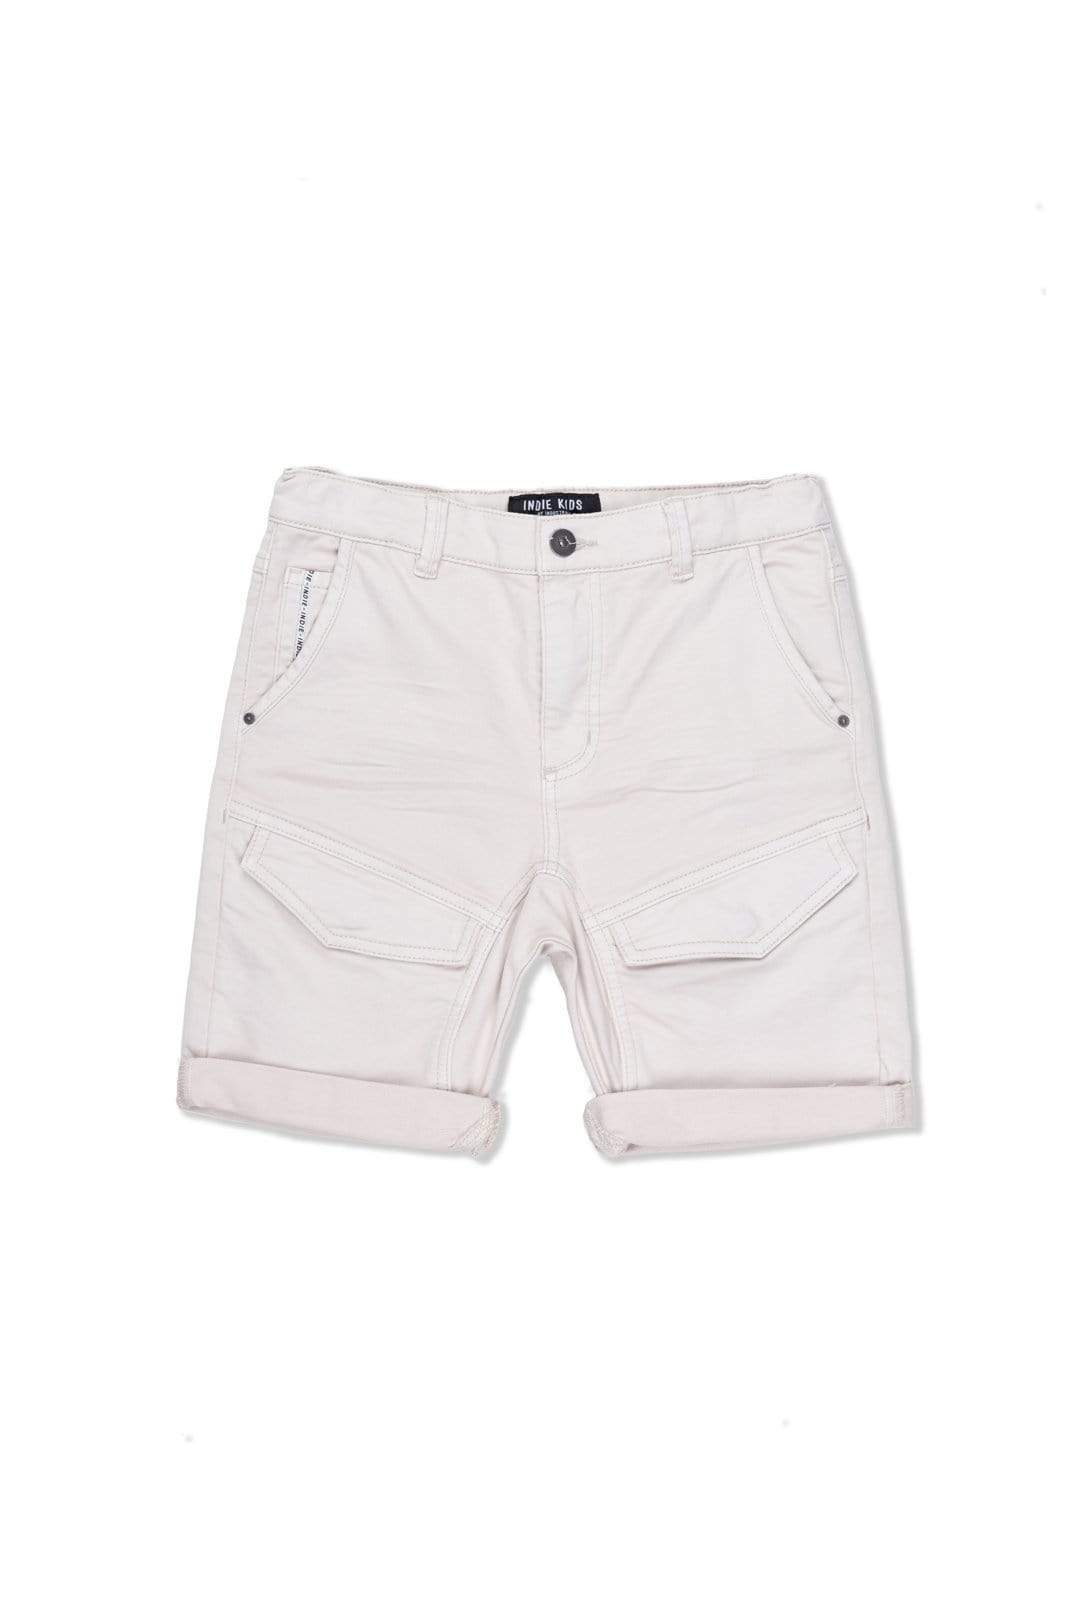 Indie Kids Shorts 8 Styled Drifter Short - Light Stone